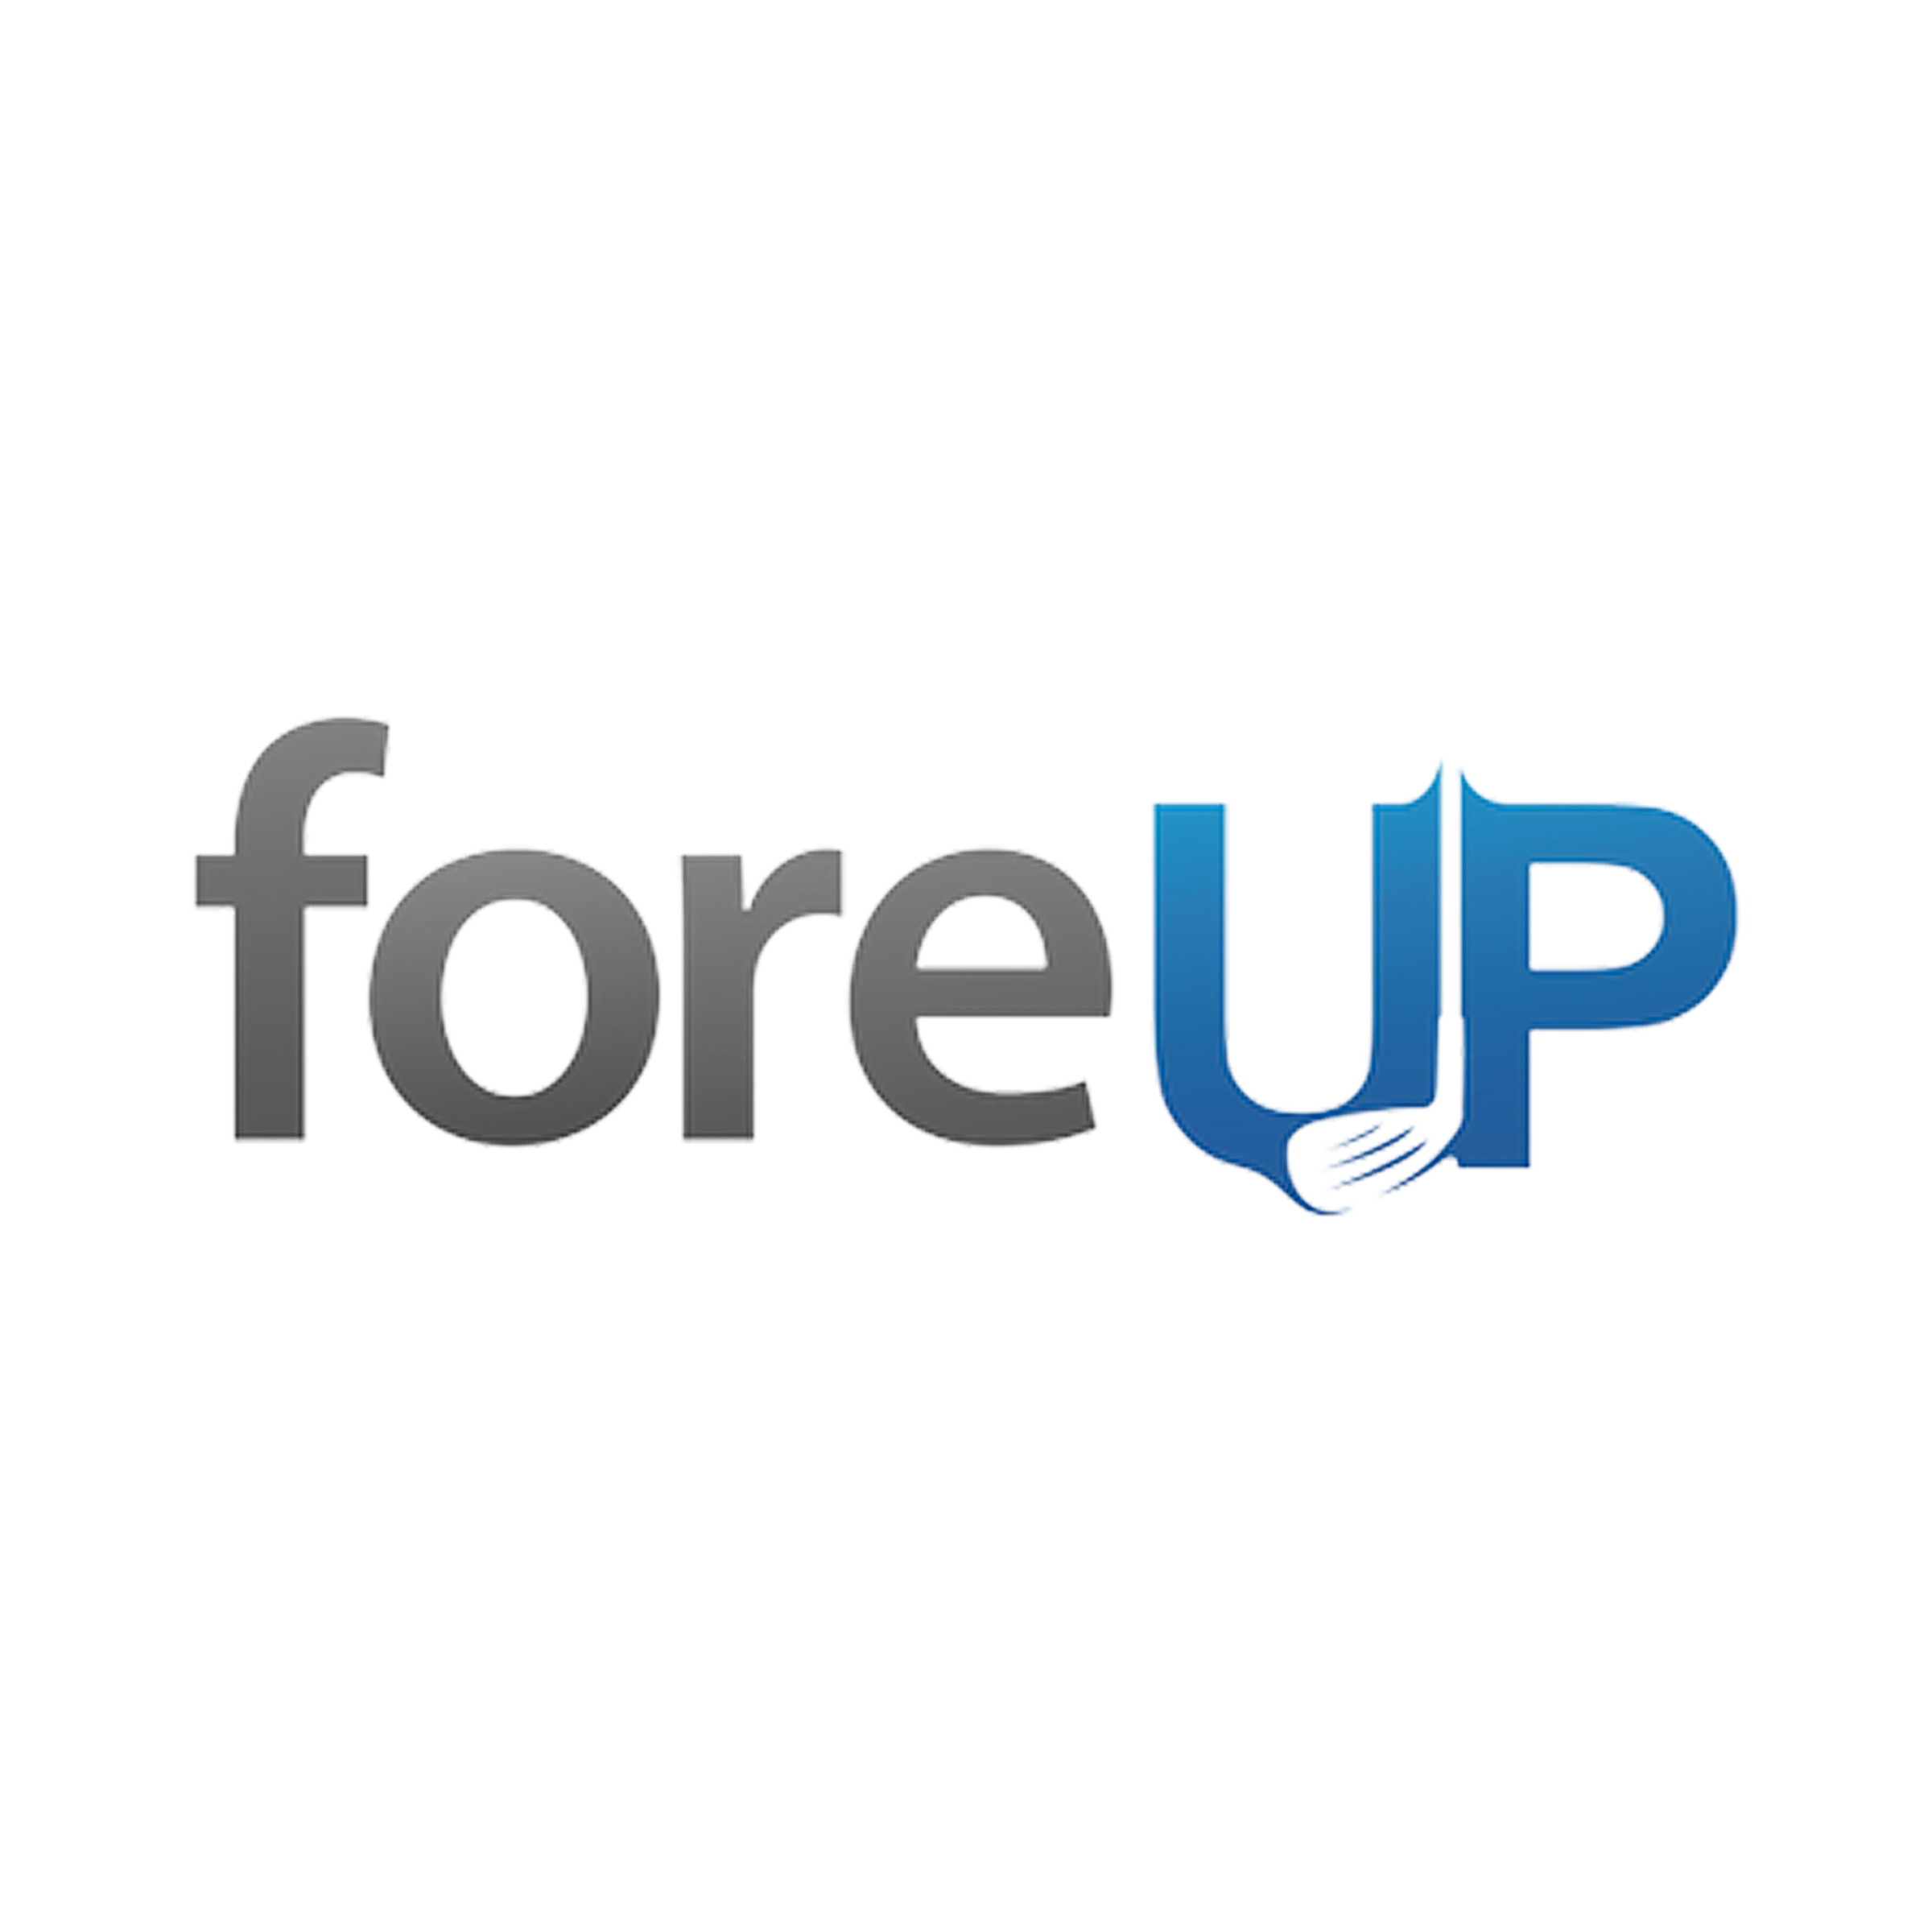 foreUP has led the golf industry into the 21st century by providing course operators with easy to use software that makes it a breeze to run every aspect of their business - on any device, anywhere they are. -